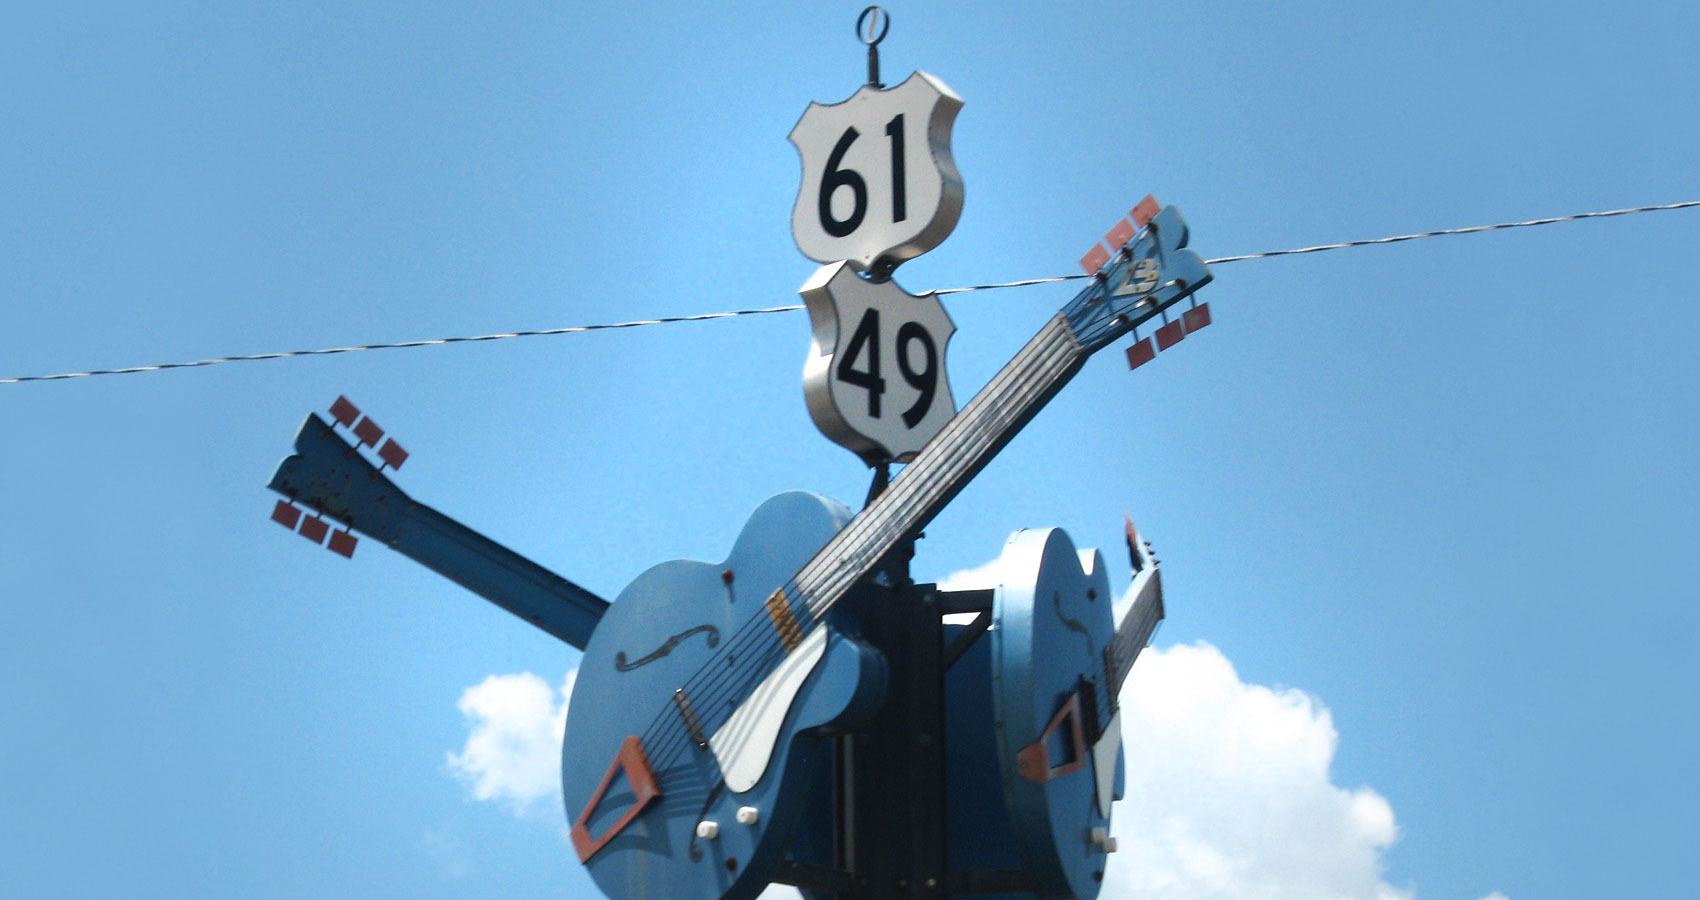 Down At The Crossroads by Richard Wall at Spillwords.com